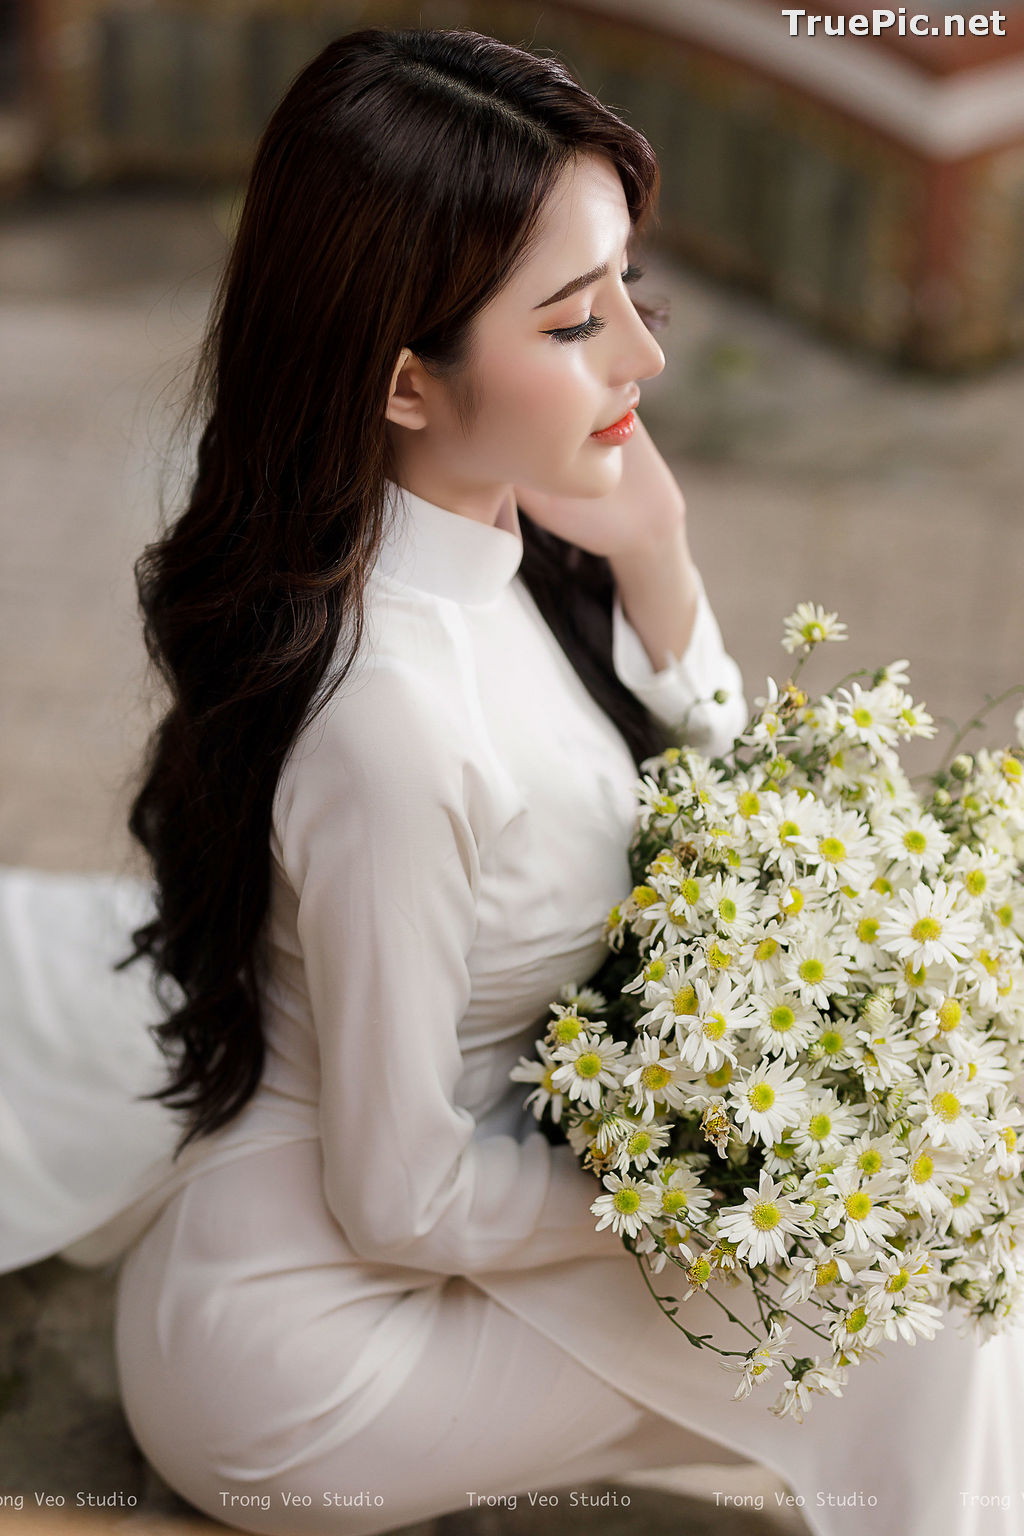 Image The Beauty of Vietnamese Girls with Traditional Dress (Ao Dai) #3 - TruePic.net - Picture-2